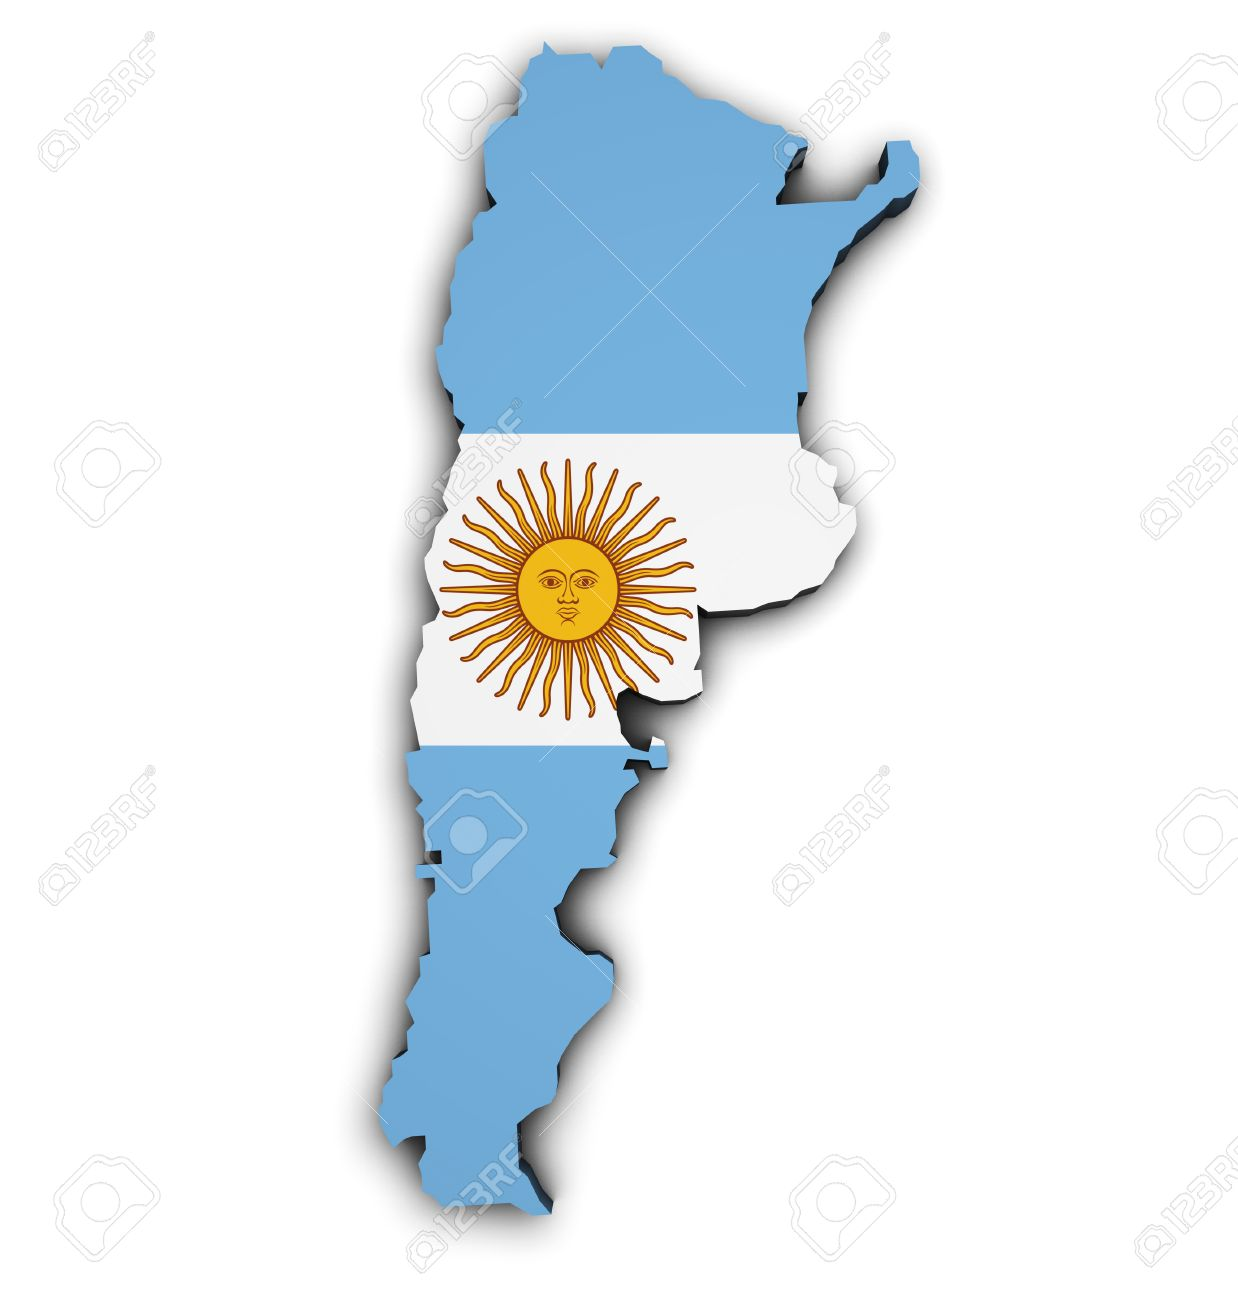 Shape D Of Argentina Map With Flag Illustration Isolated On - Argentina map shape